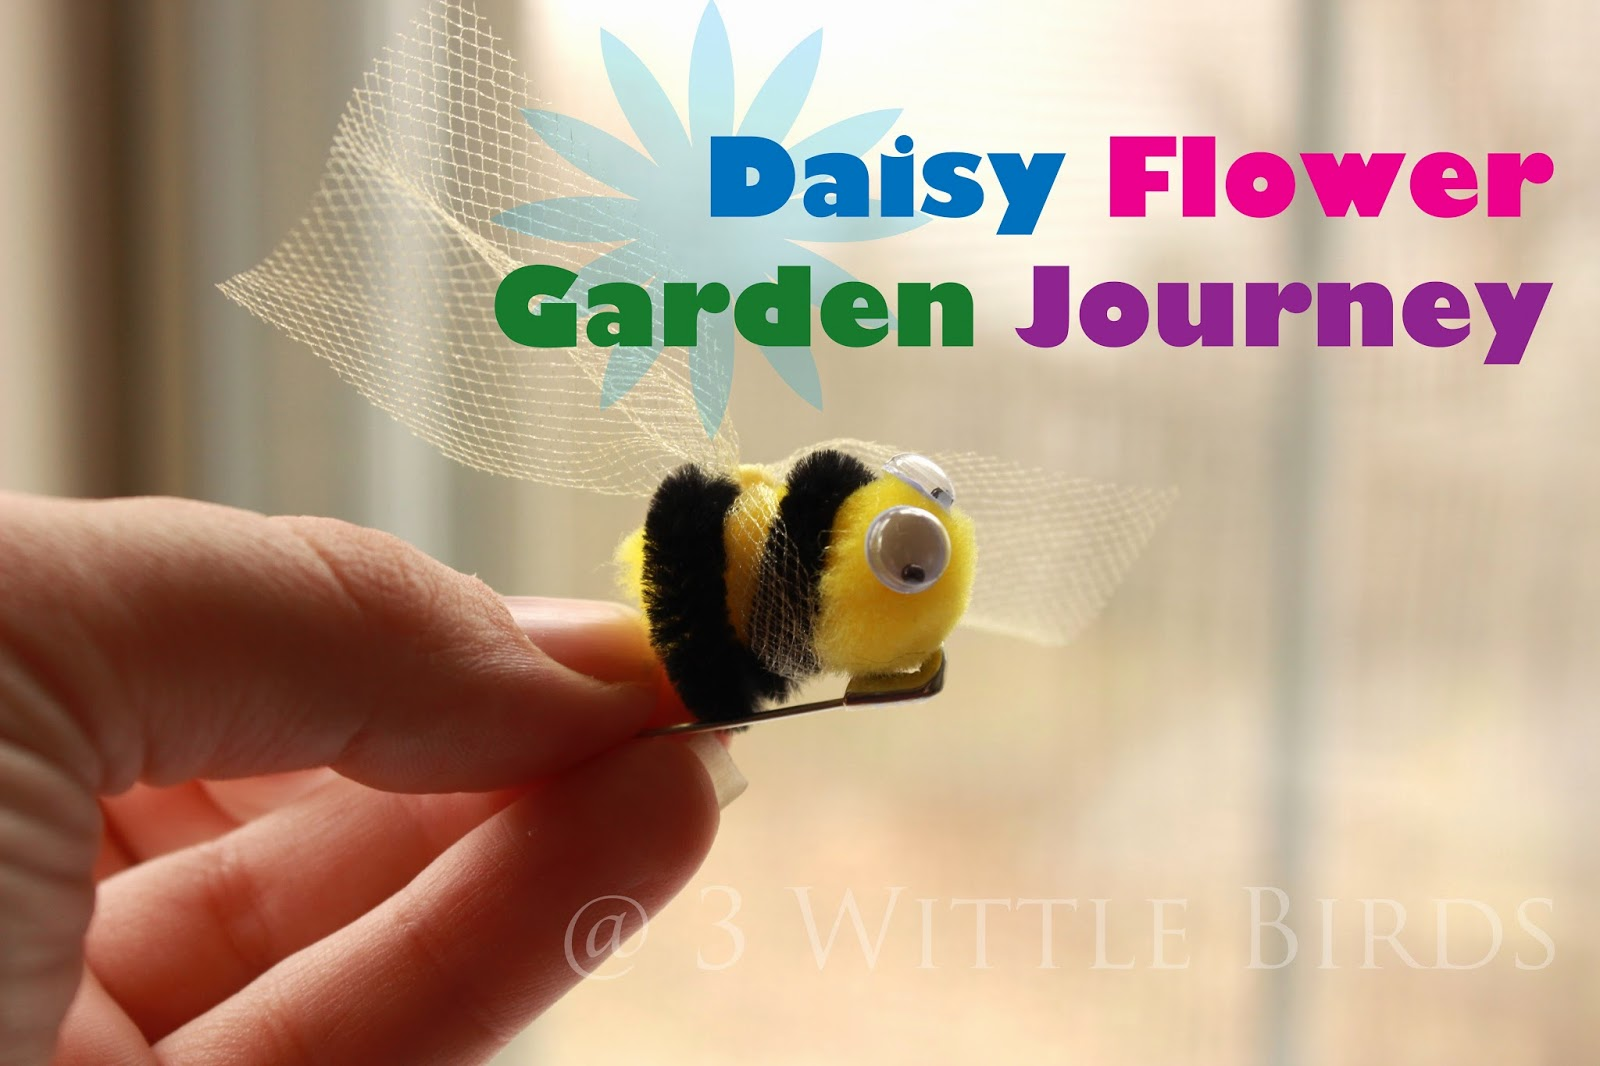 3 wittle birds daisy flower garden journey session 2 daisy flower garden journey session 2 dhlflorist Image collections